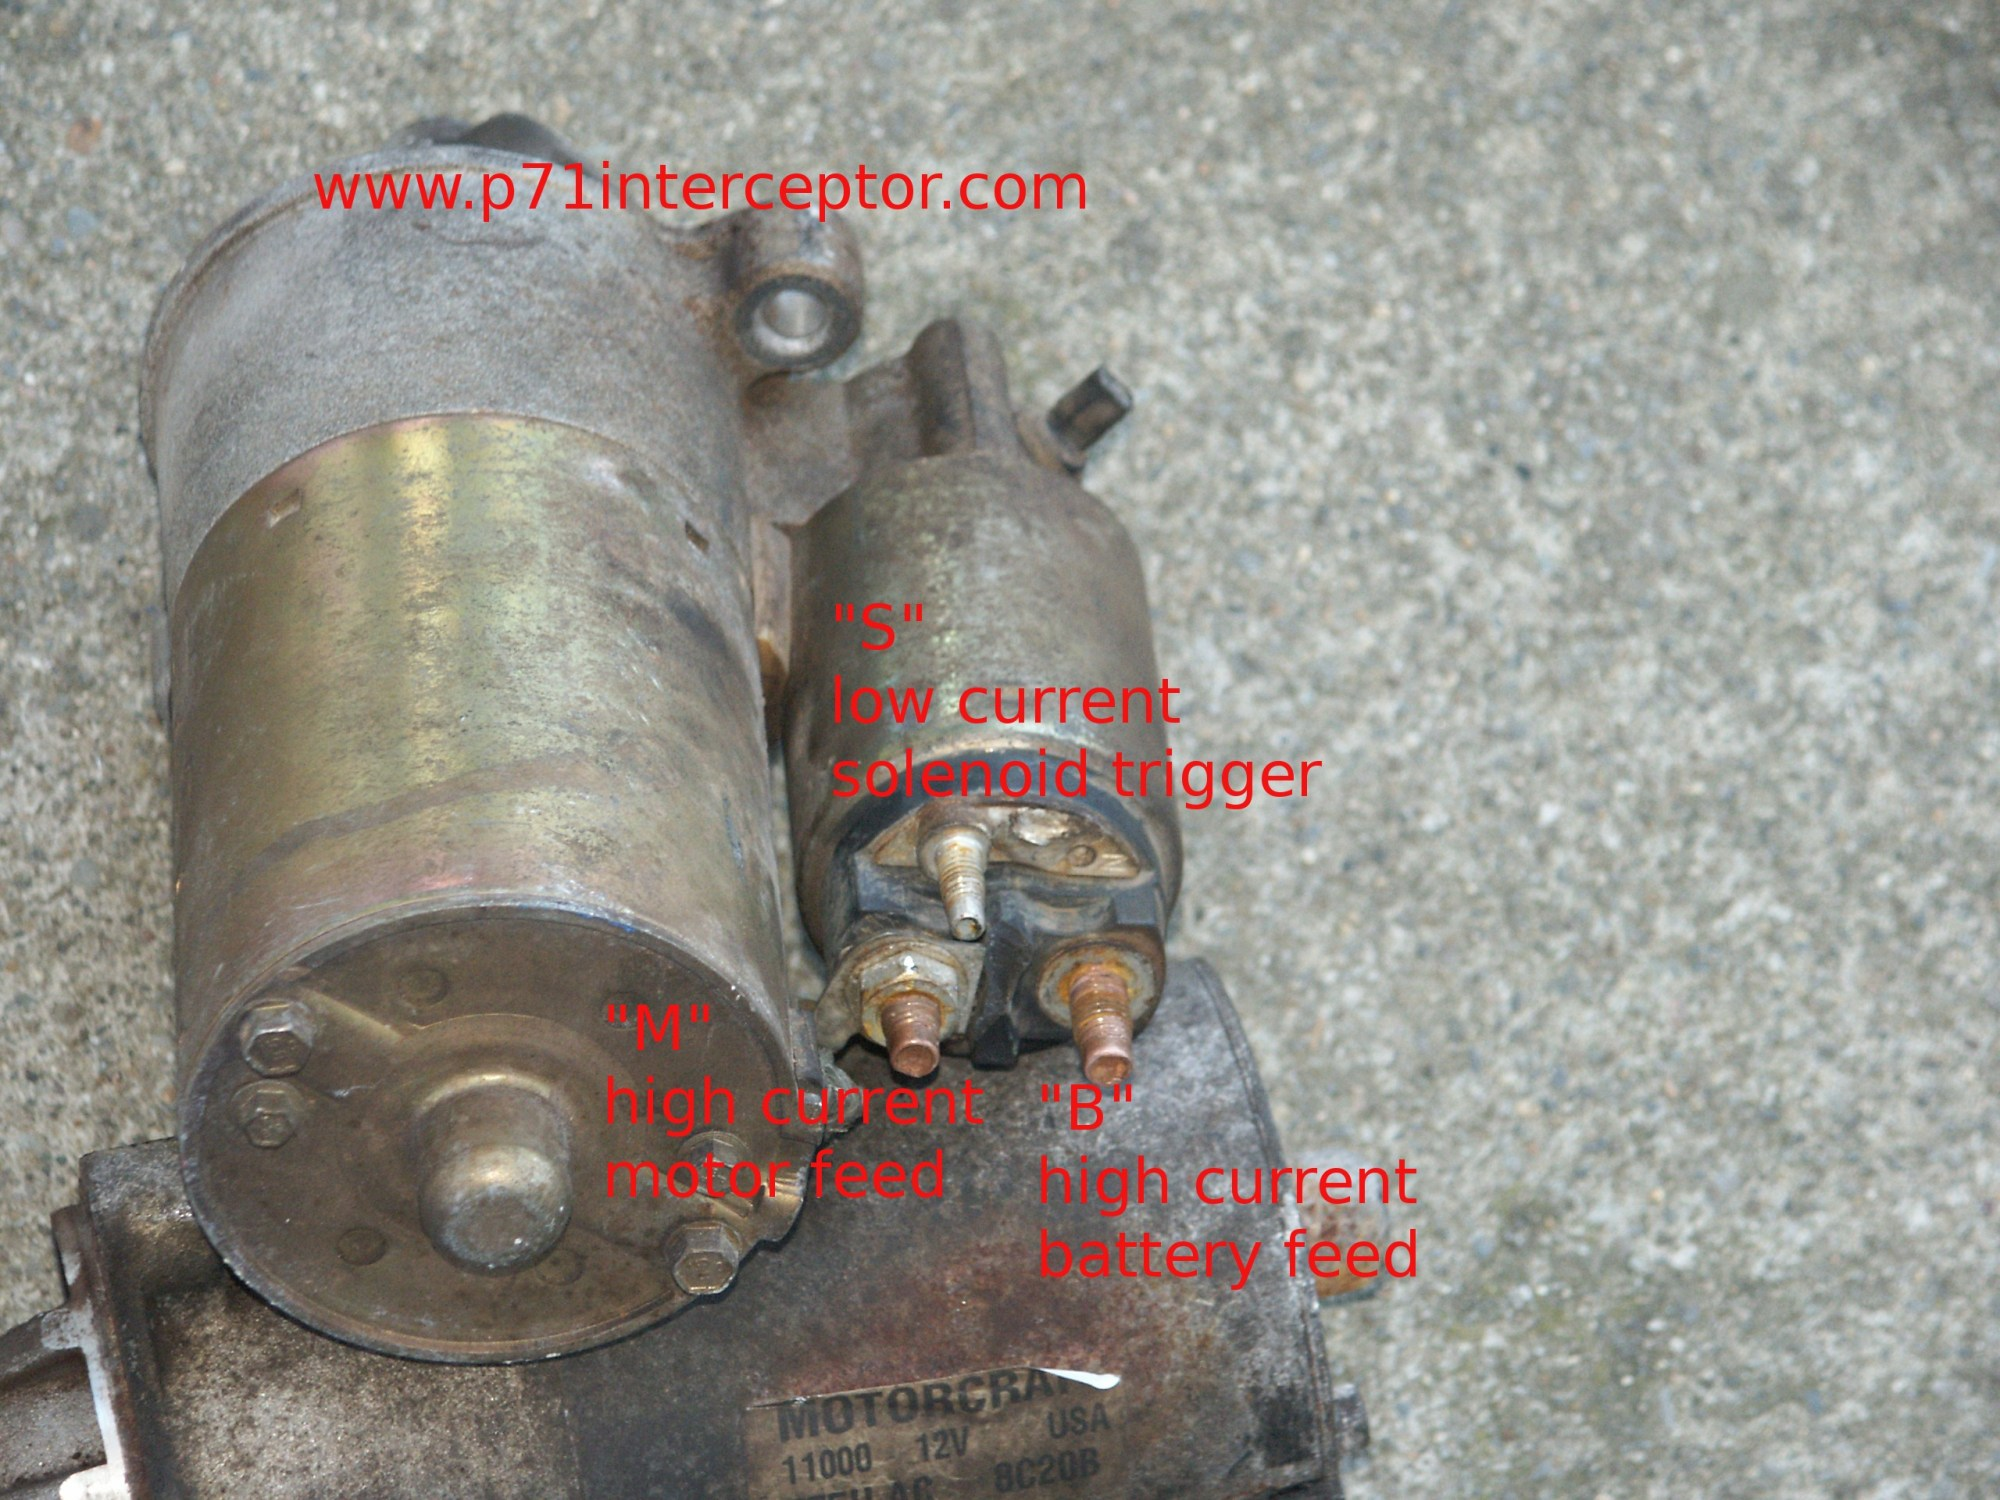 hight resolution of ford starter solenoid spade terminal pict6197 ford starter solenoid spade terminal ford bronco starter solenoid wiring diagram at cita asia